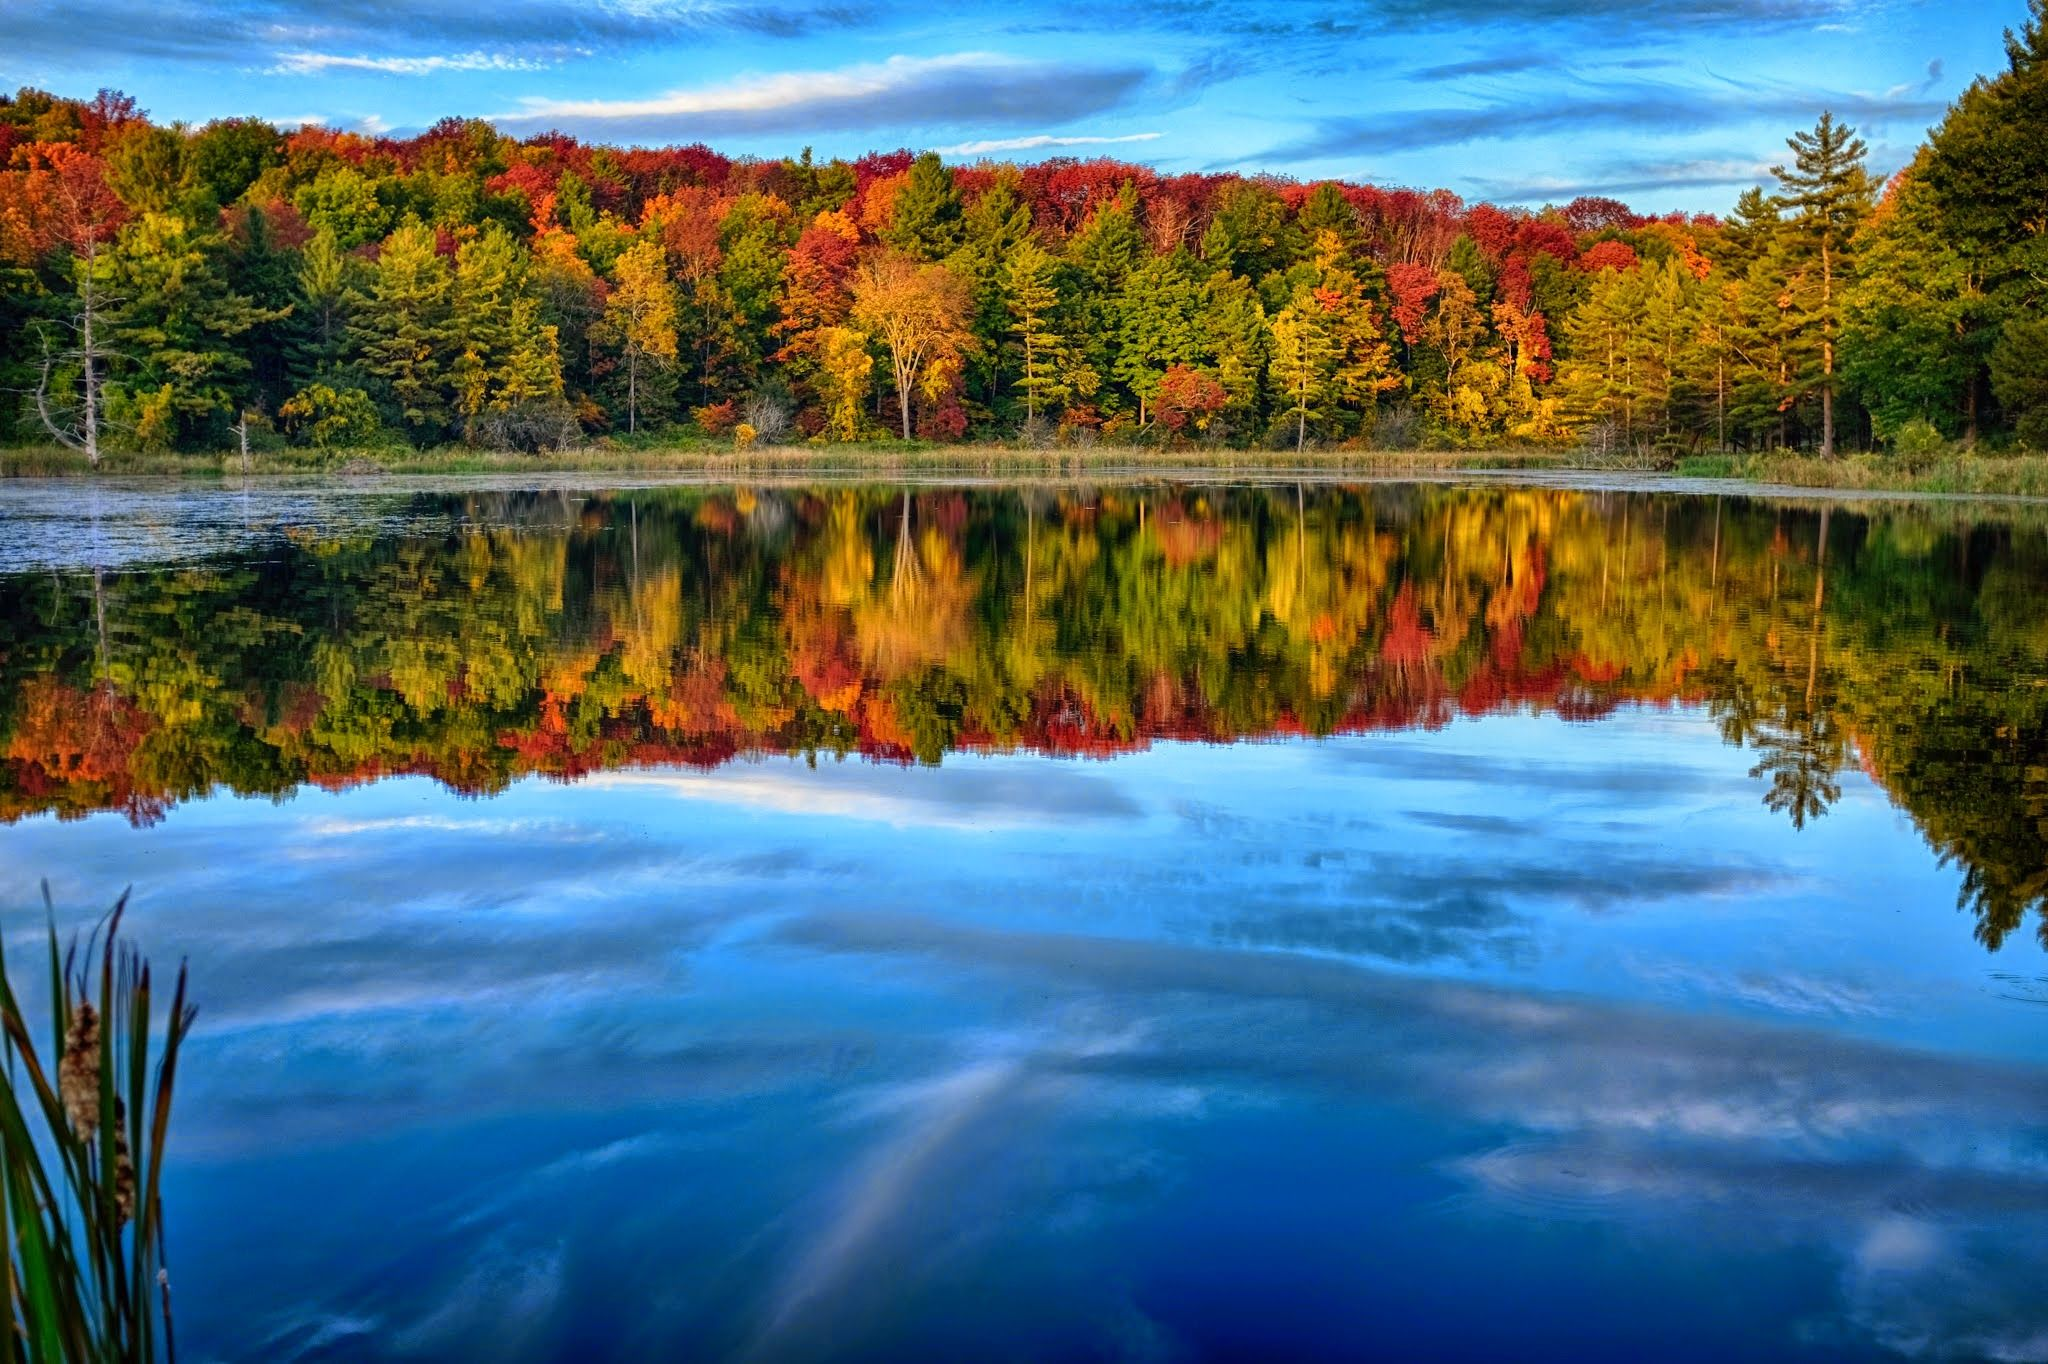 berkshires places massachusetts fall visit foliage autumn pond cool cmc ma outside beaver american place embrace nyc really states grounds